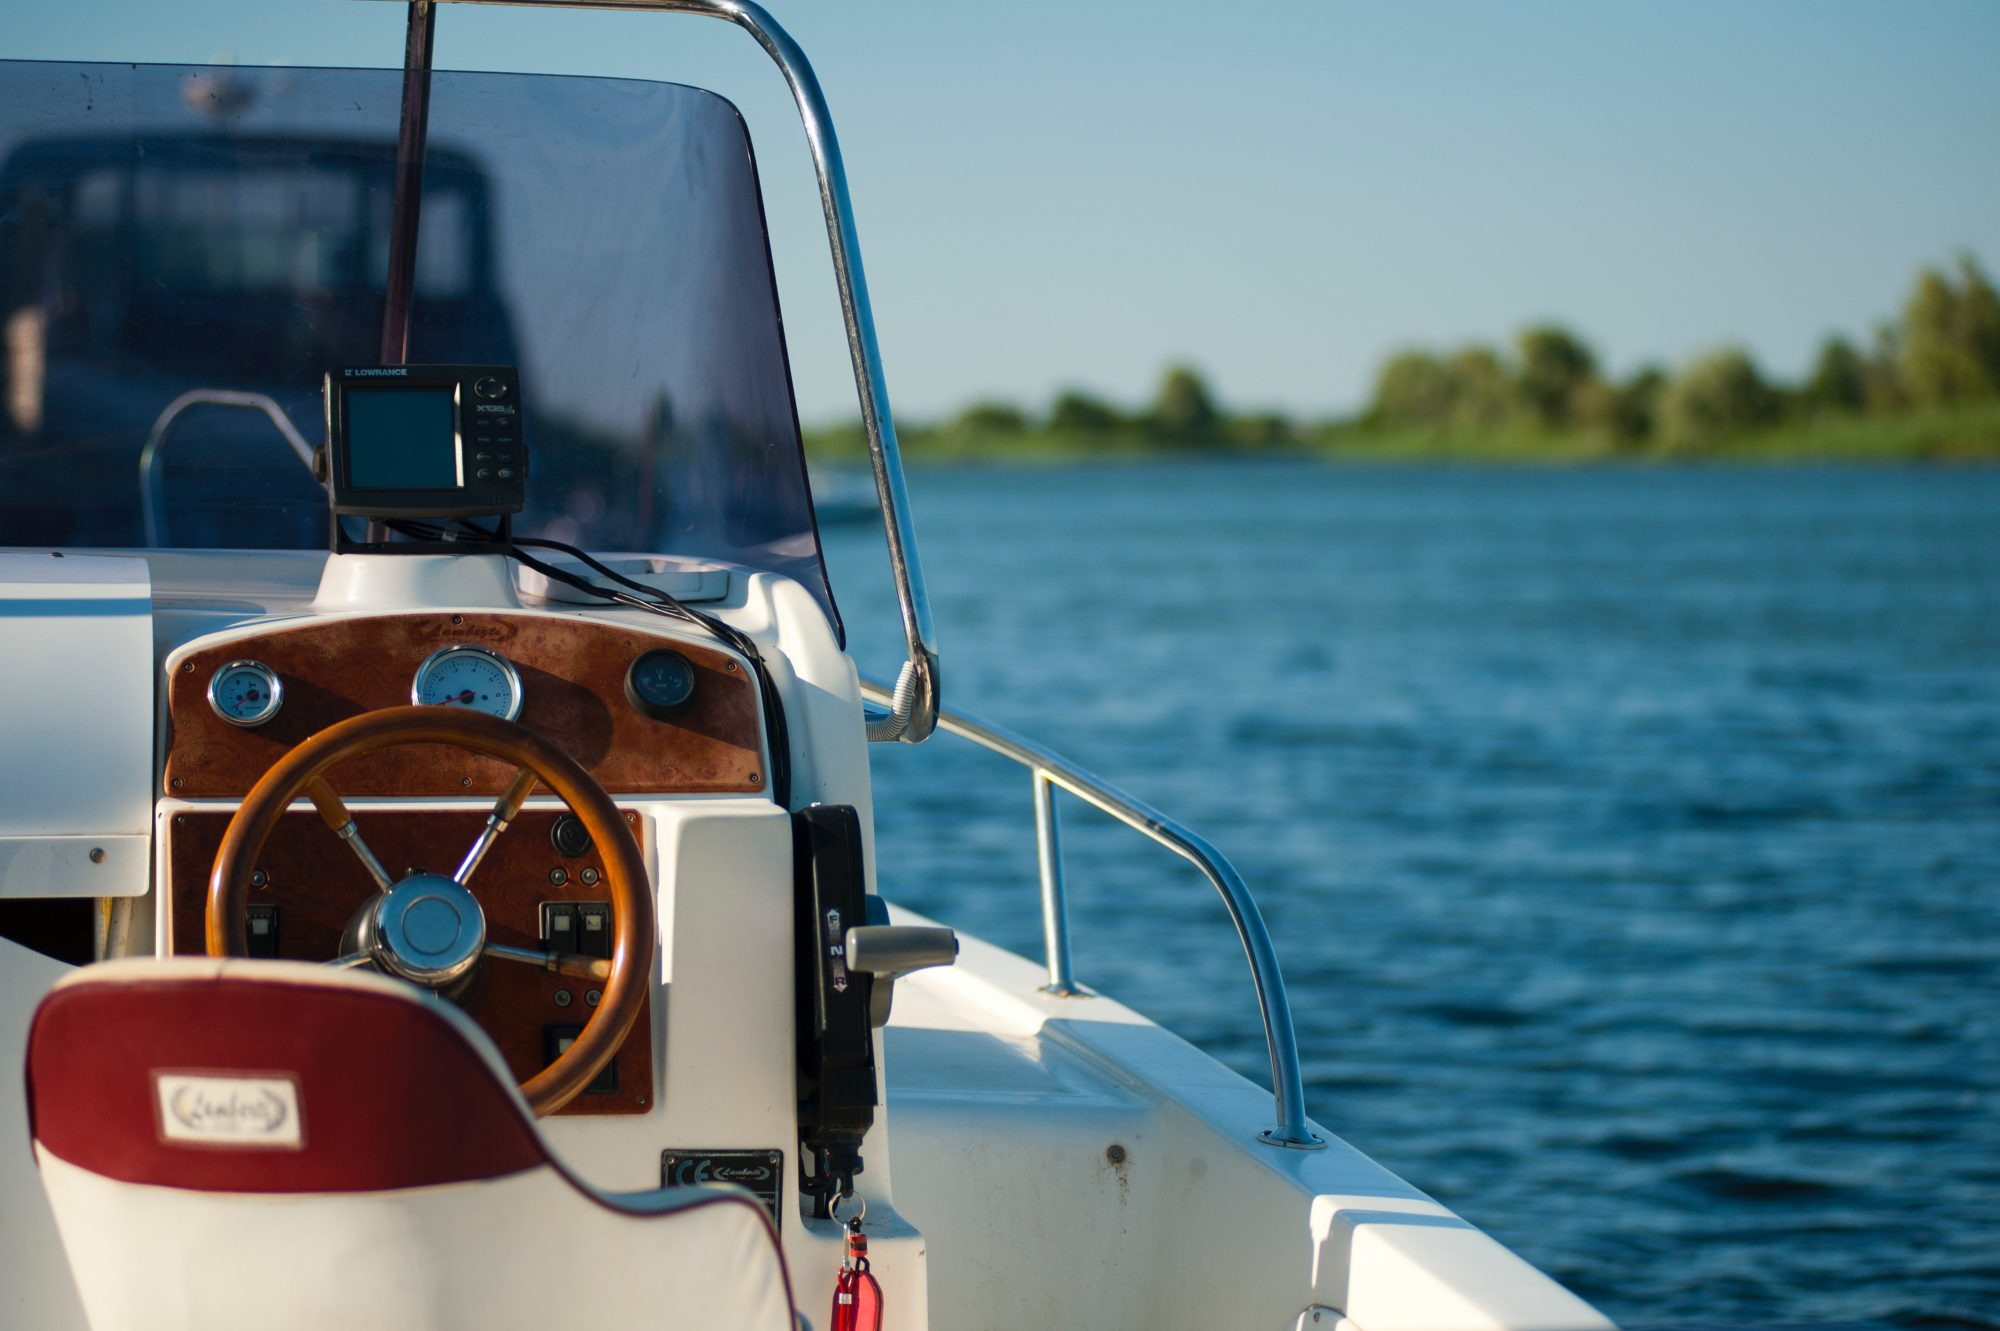 Onboard Learning - BoatSafe approved online marine licencing courses